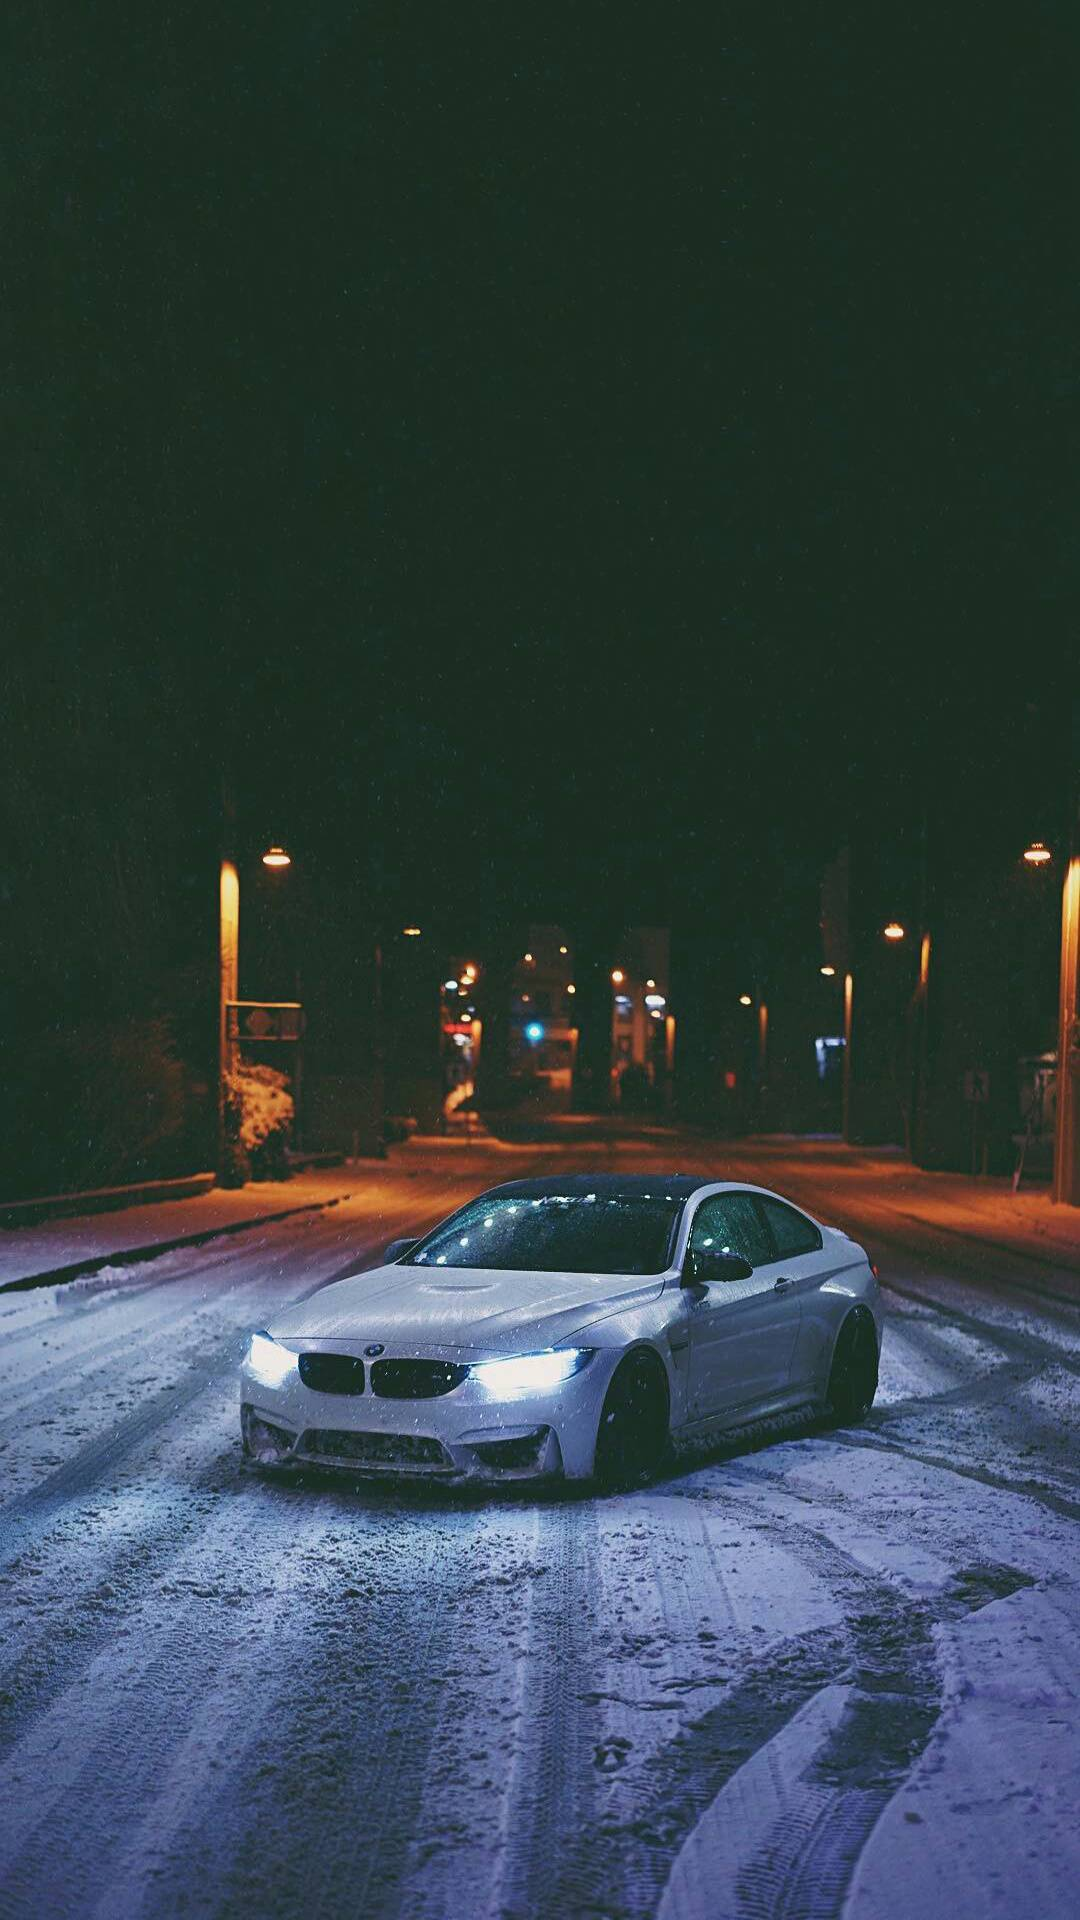 Bmw M4 Hd Iphone Wallpaper Iphone Wallpapers